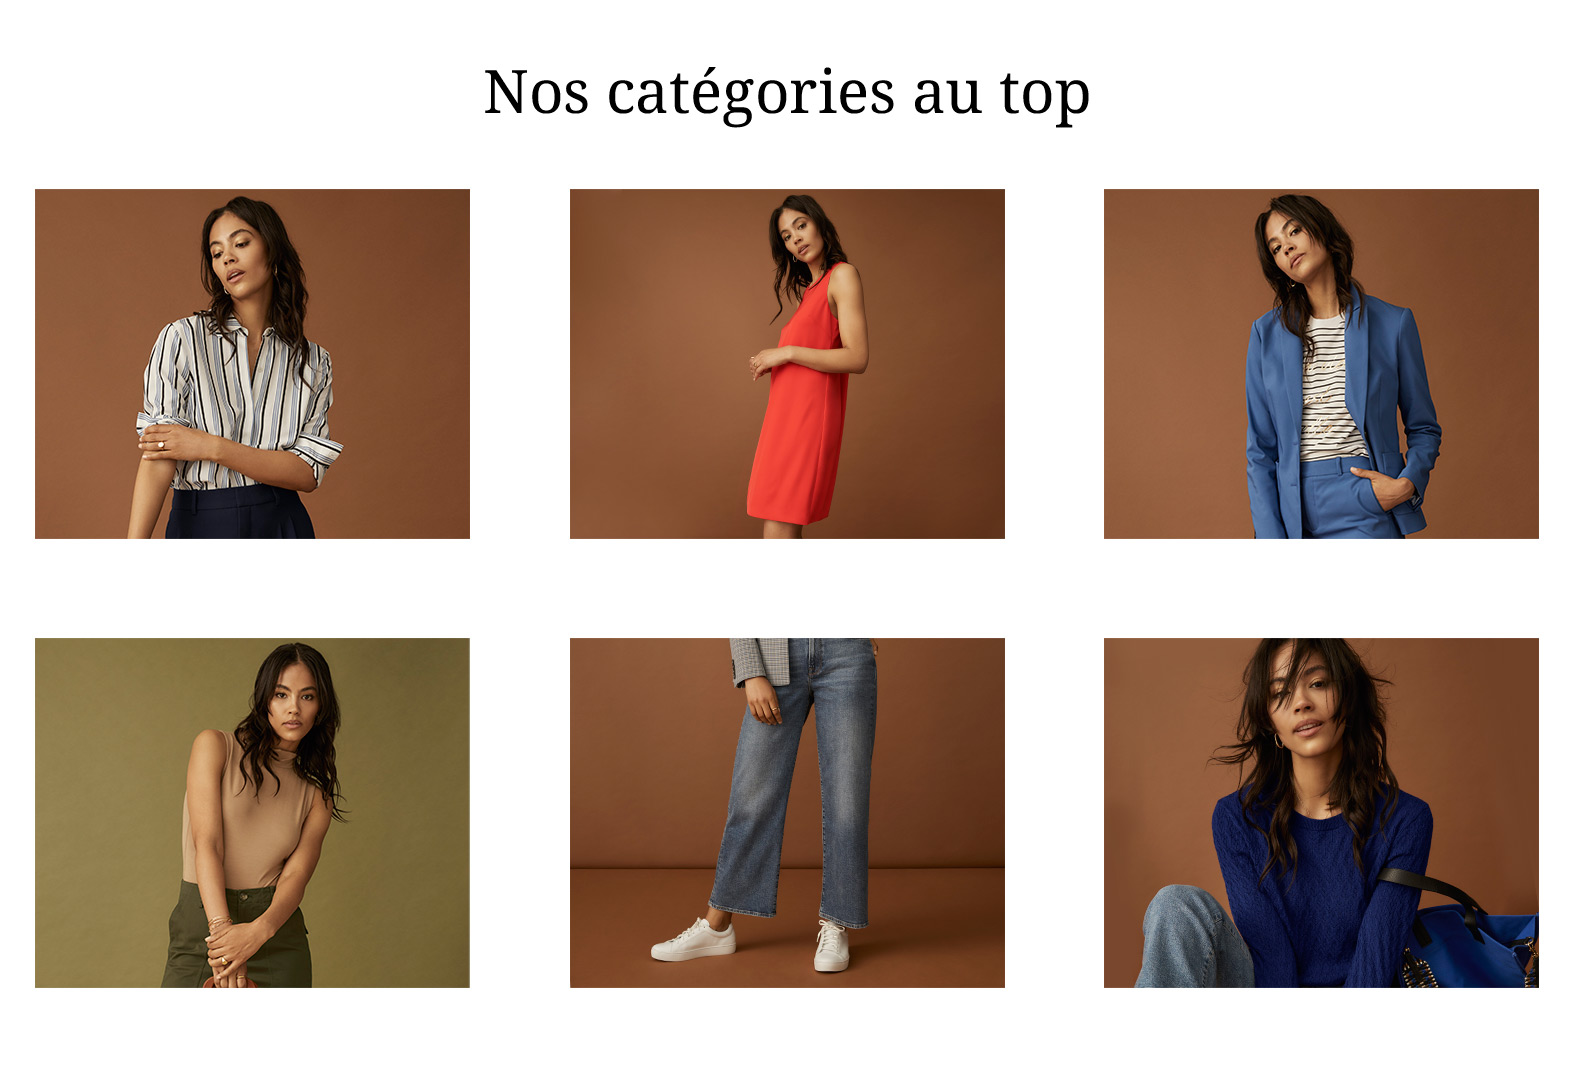 D-LMS-02-P19-CONTEMPORAINE-Categories.psd